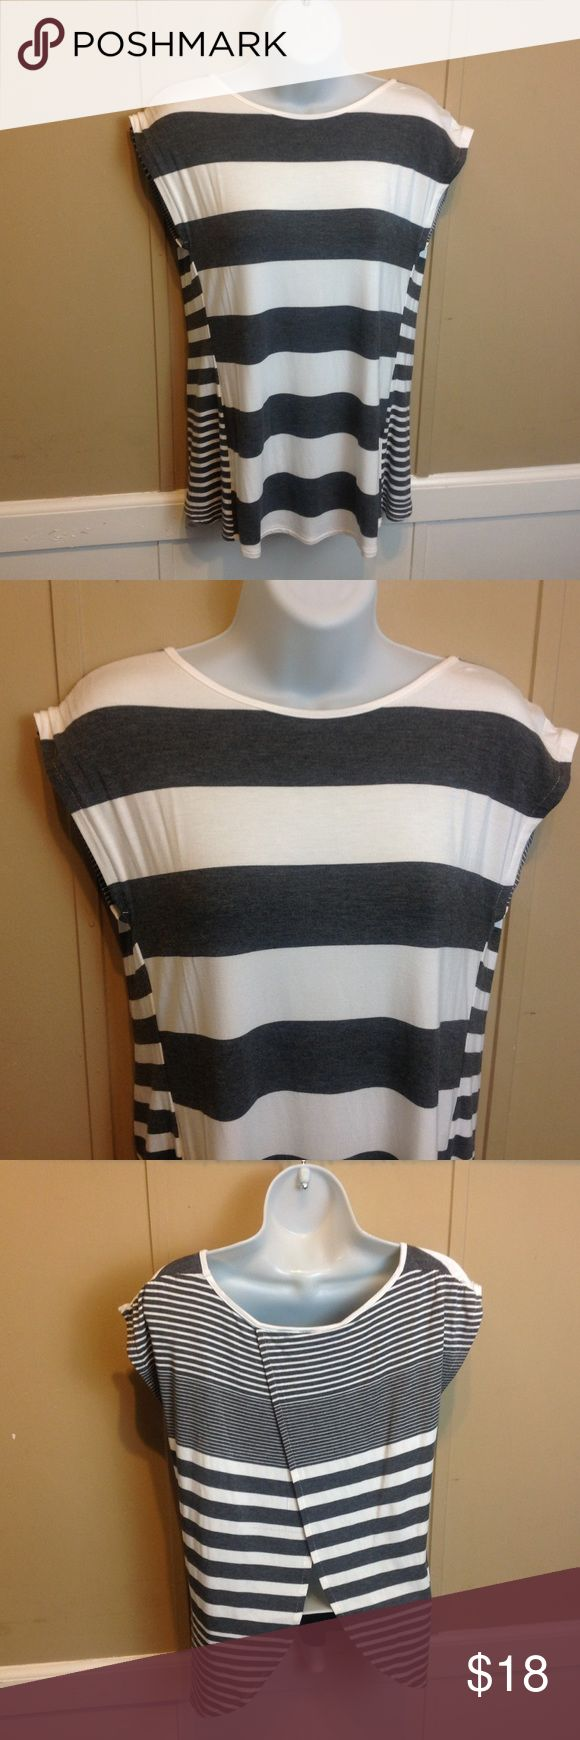 "BLUE Saks FIfth Avenue Striped Tee Maker: Saks Fifth Avenue ♥ Material: 95% Viscose 5% spandex ♥ Color: Navy and White Striped ♥ Measured Size: Pit to pit- 17"" Pit to cuff- n.a Shoulder to waist- 24""  ♥ Tag Size:  XS ♥ Actual Size: XS PLEASE CHECK YOUR ACTUAL MEASUREMENTS TO MAKE SURE IT IS THE RIGHT SIZE! THANKS! ♥ Condition: Great Used Condition ♥ Item #: (office use only) E  Follow us on Instagram and facebook for coupon codes!  INSTAGRAM-thehausofvintage1984 Saks Fifth Avenue Tops Tees…"